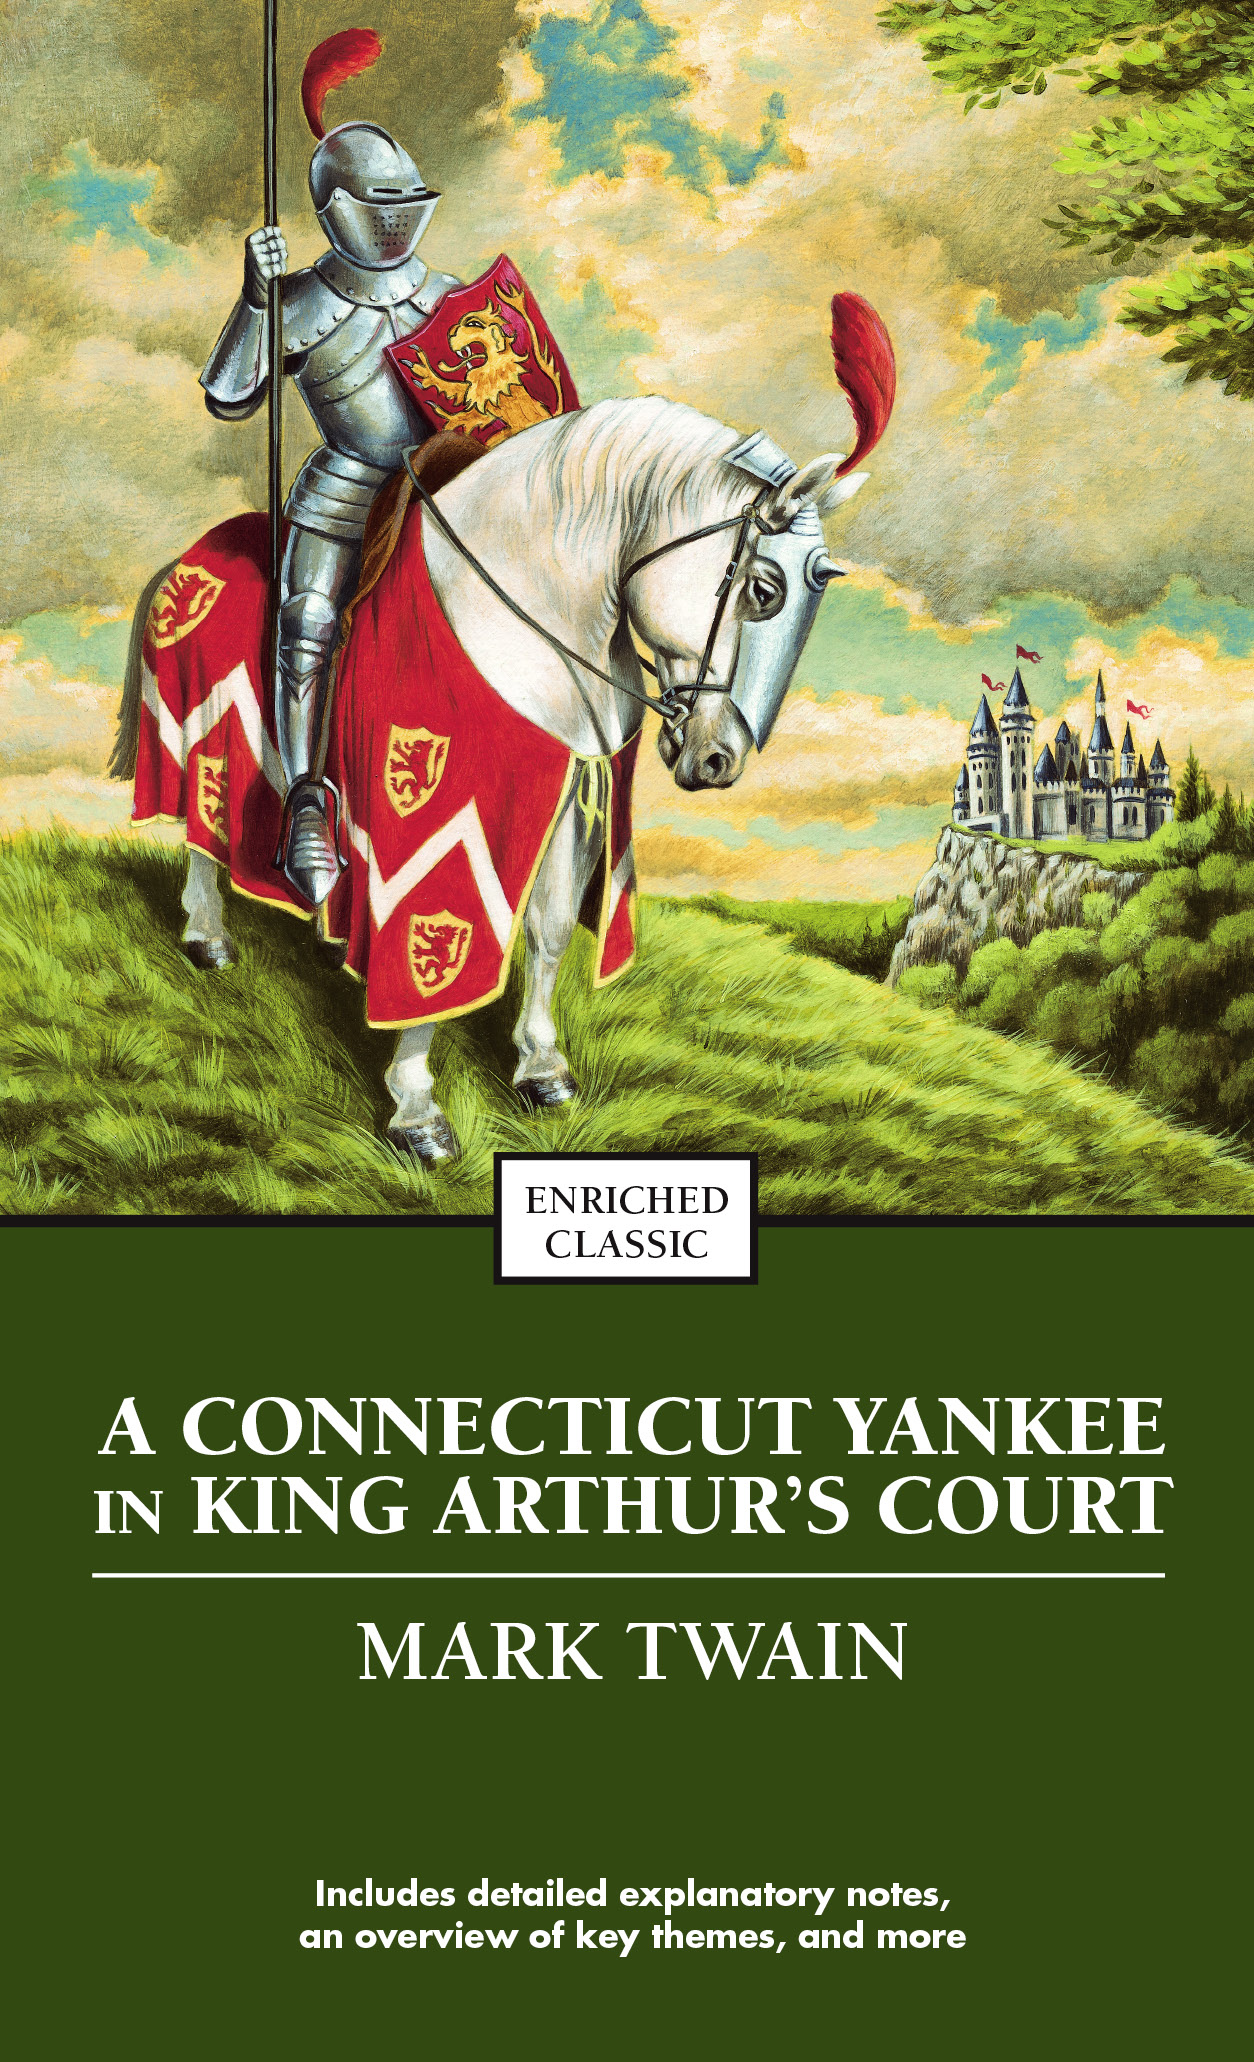 A Connecticut Yankee in King Arthur's Court: Theme Analysis